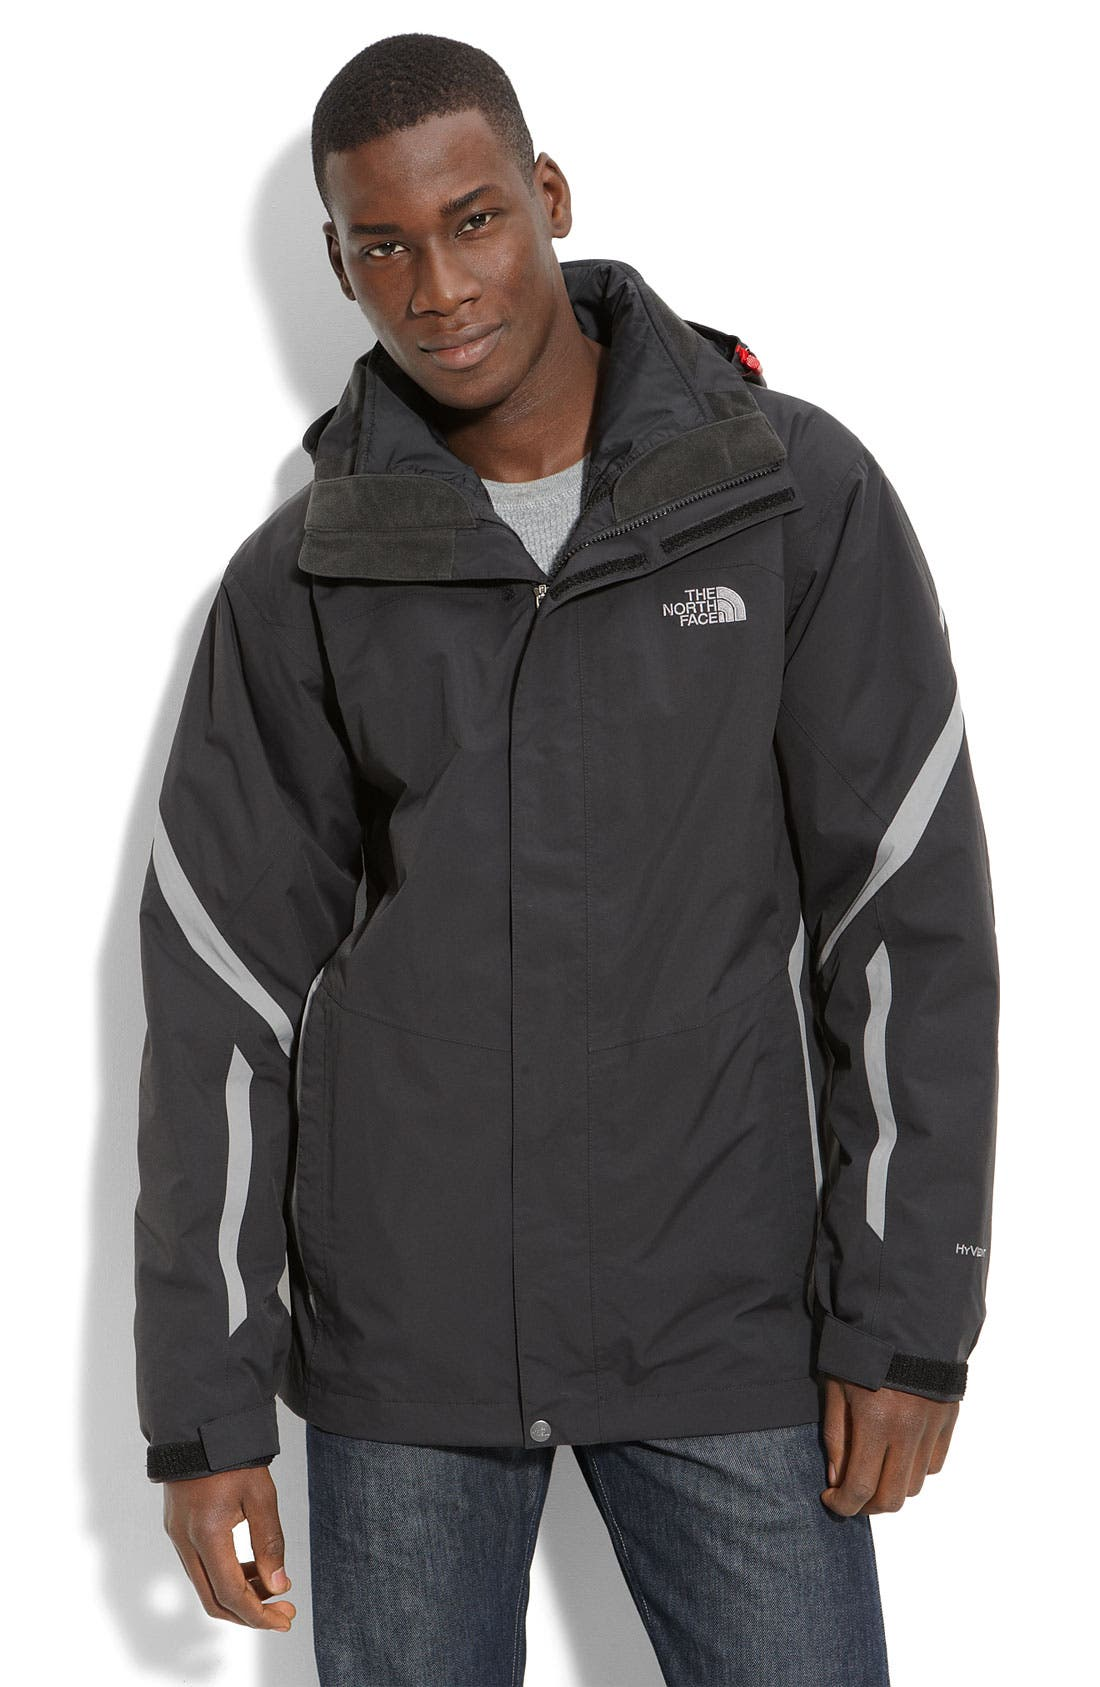 THE NORTH FACE,                             'Tilithium' TriClimate<sup>®</sup> 3-in-1 Jacket,                             Main thumbnail 1, color,                             001